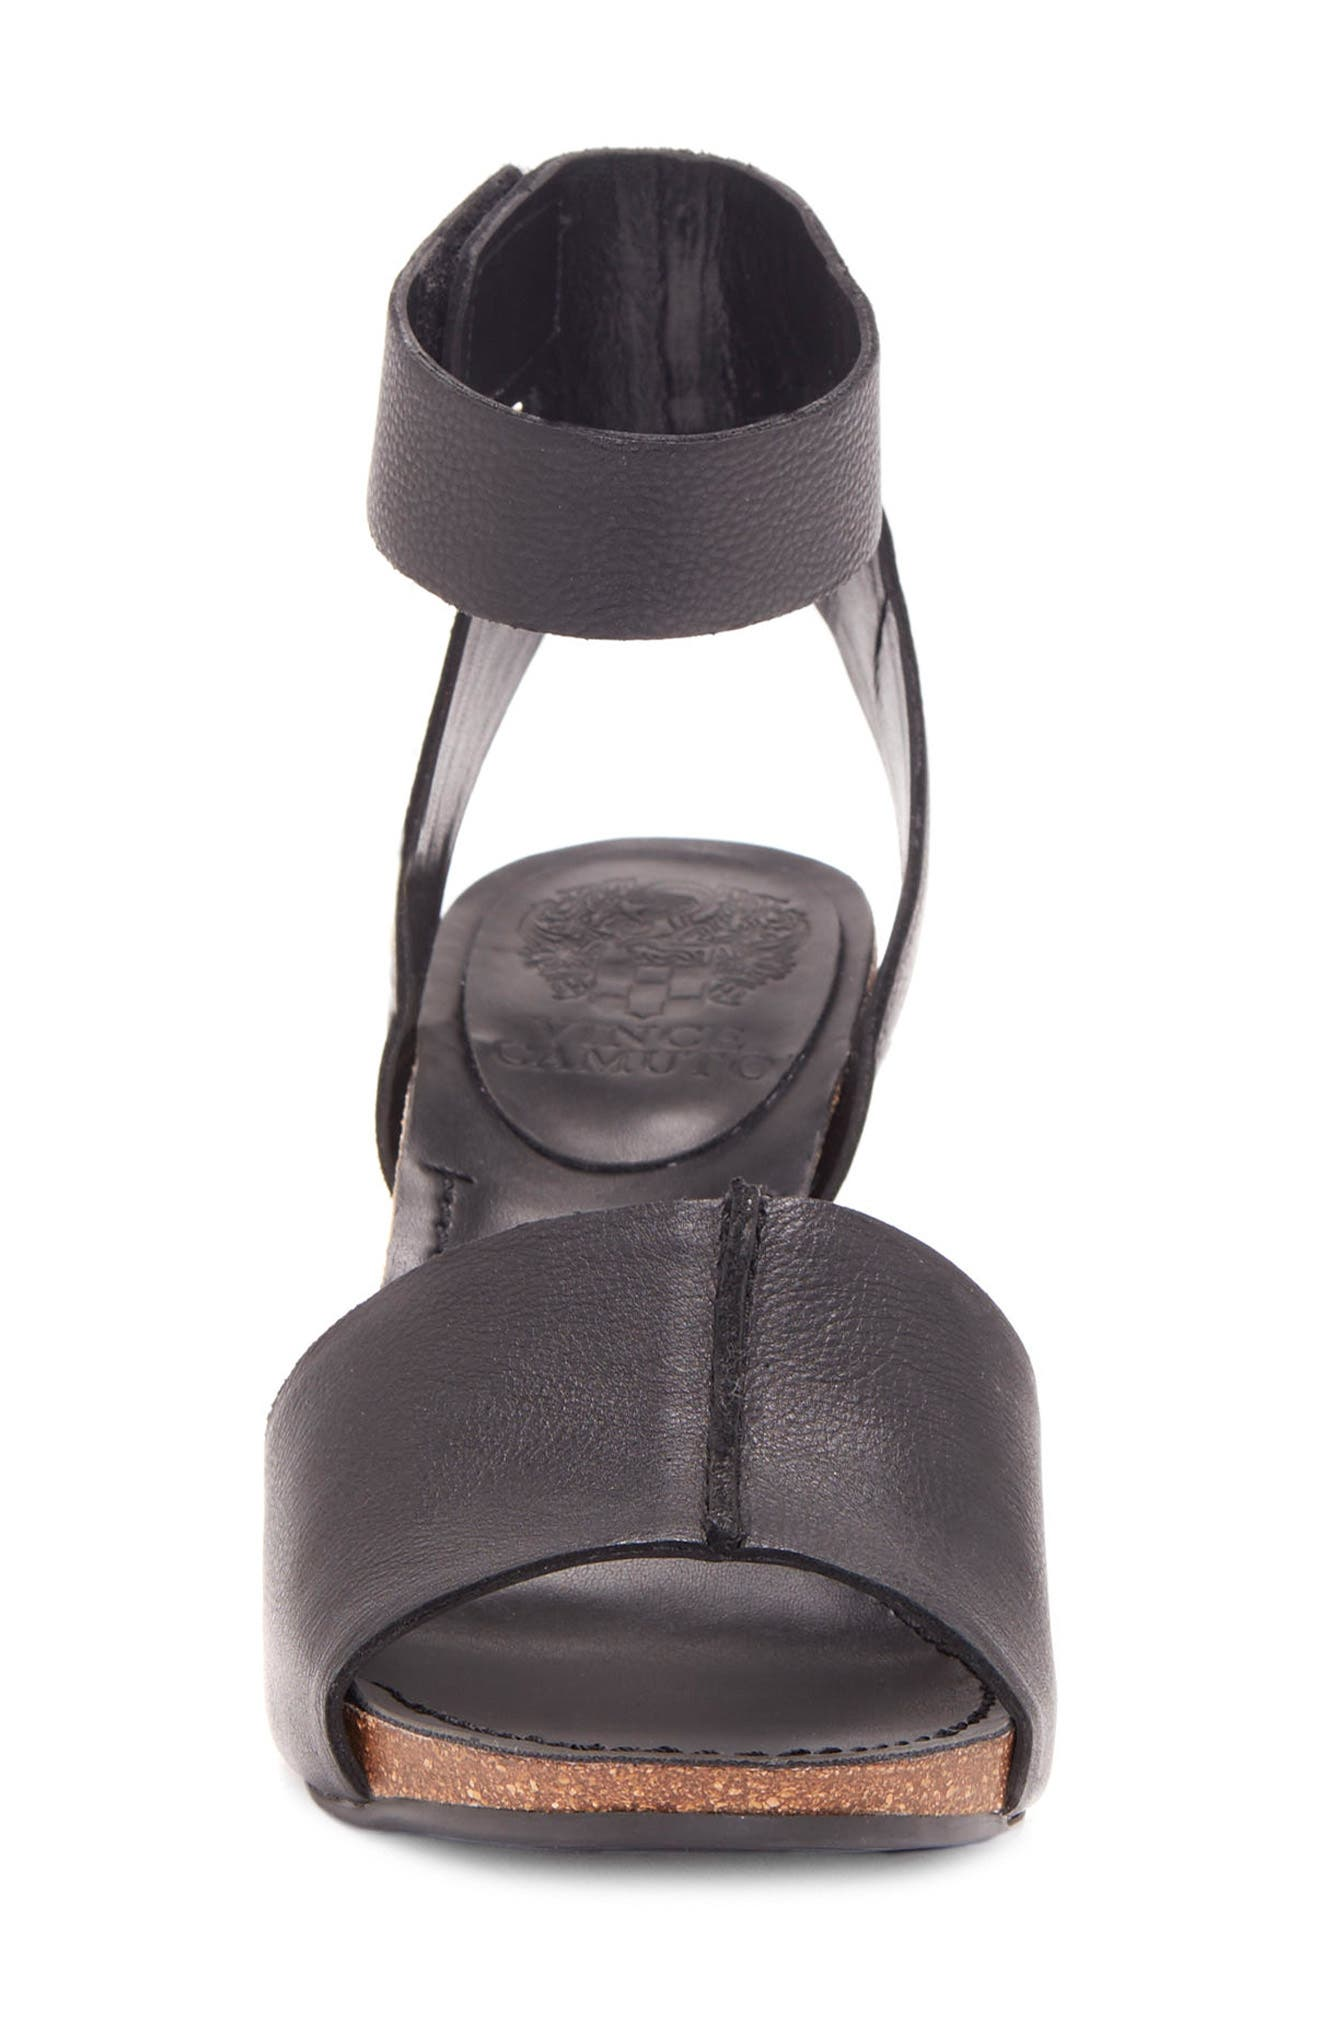 Odela Sandal,                             Alternate thumbnail 4, color,                             BLACK LEATHER